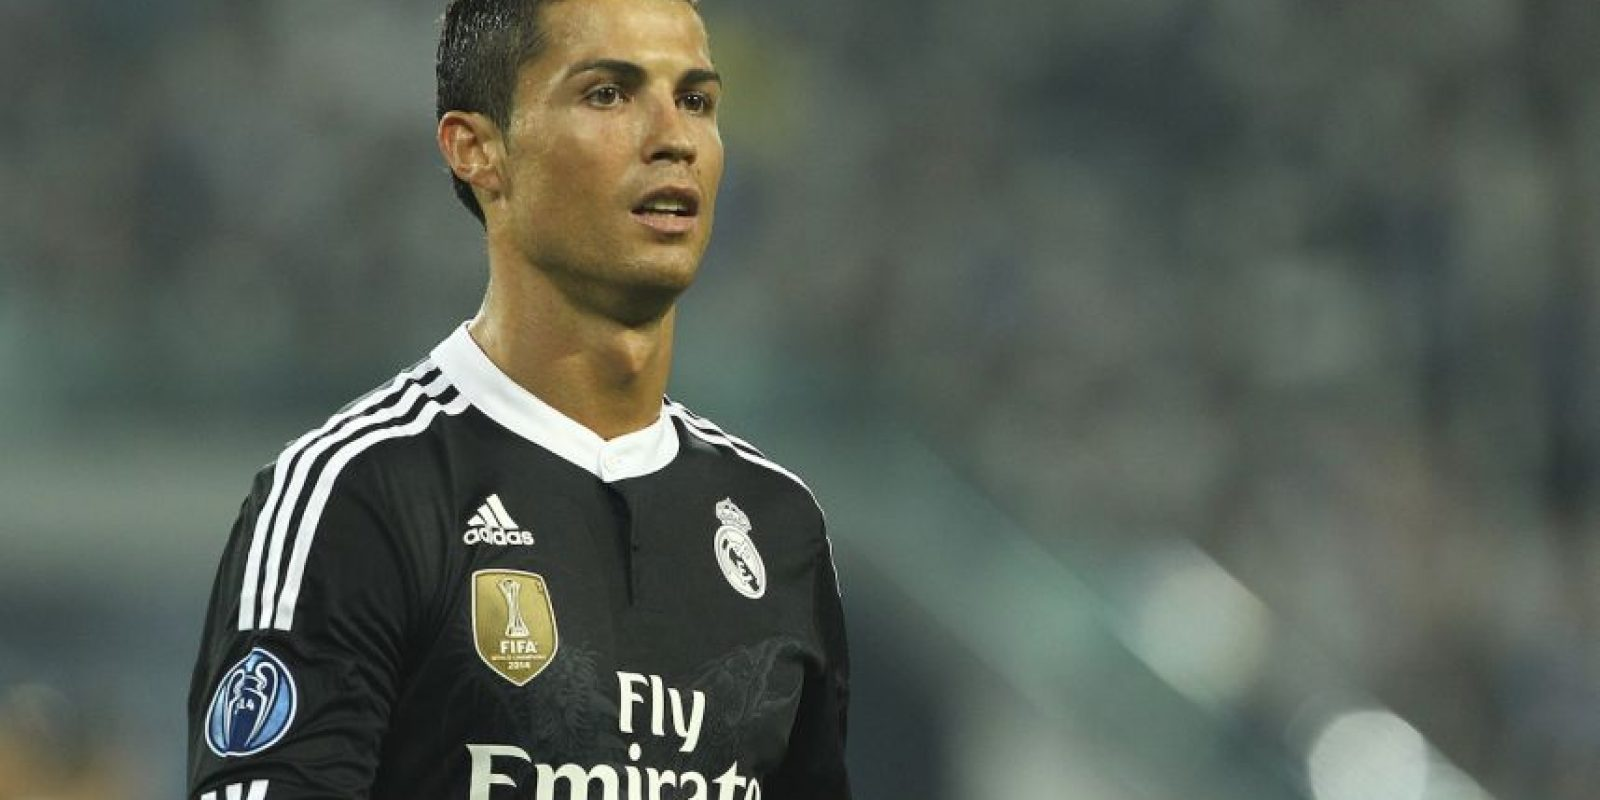 3. Cristiano Ronaldo Foto: Getty Images